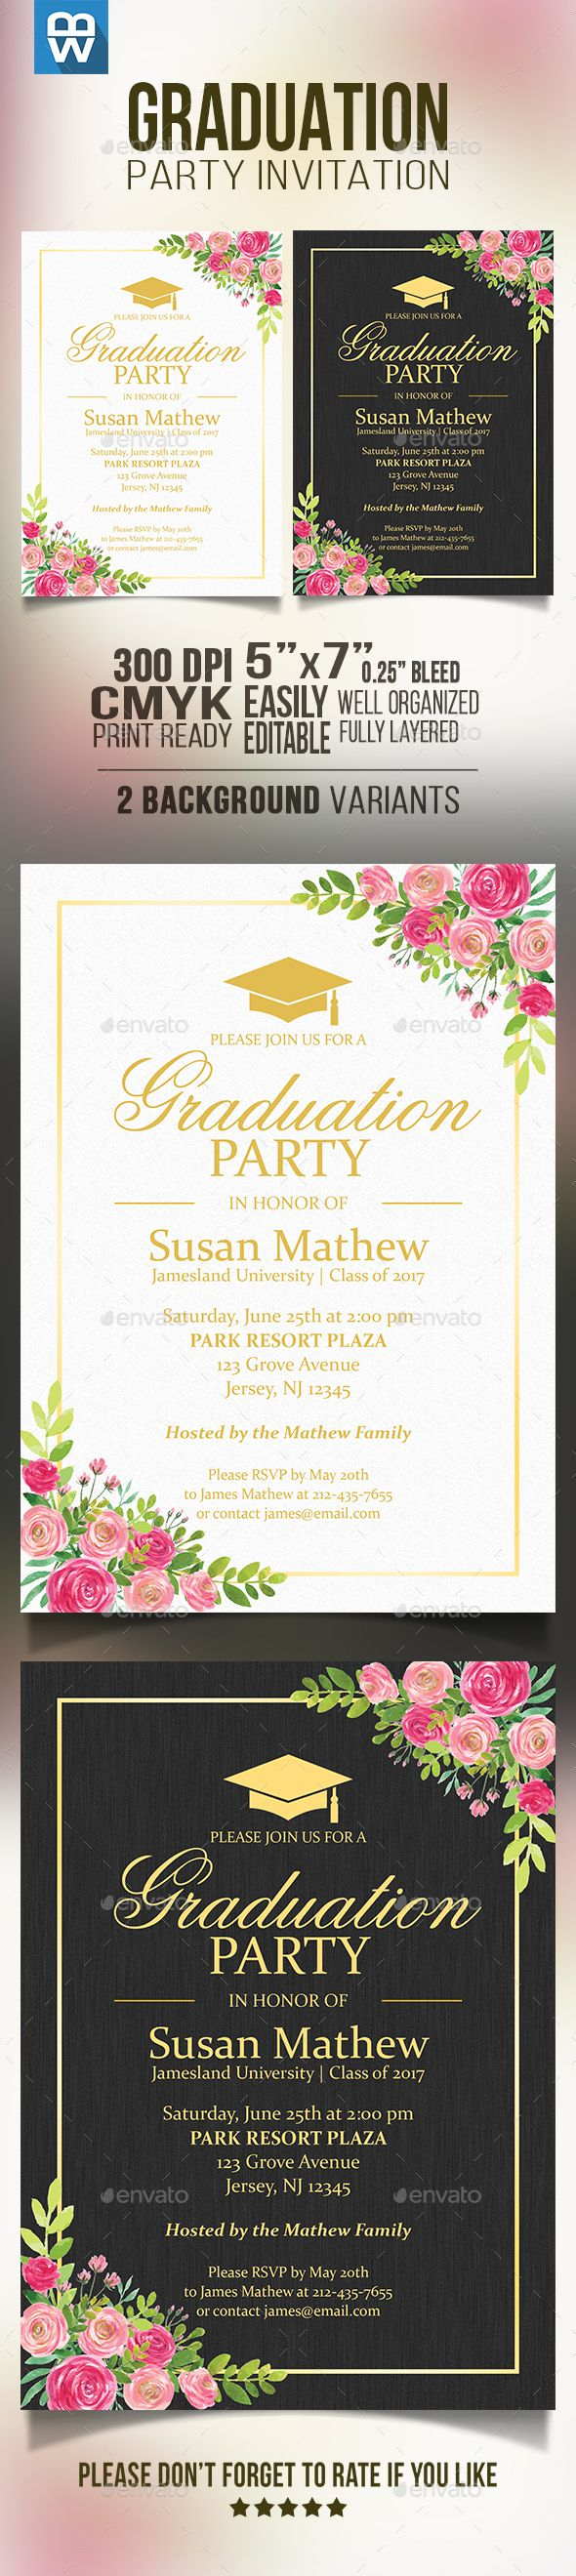 Floral Graduation Party Invitation Template PSD. Download here: http://graphicriver.net/item/floral-graduation-party-invitation/16185389?ref=ksioks